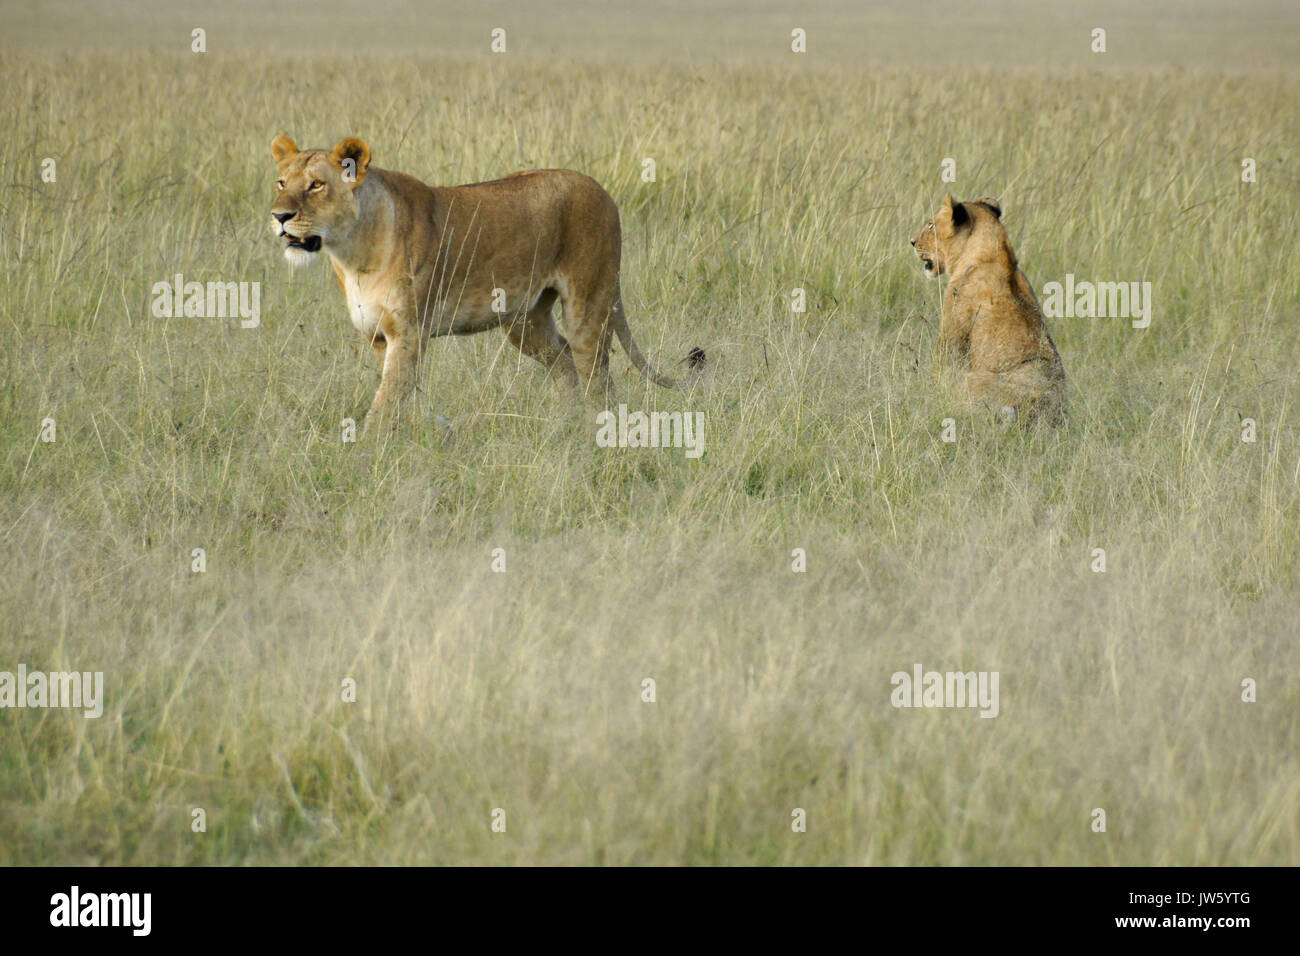 Two lionesses in long grass, Masai Mara Game Reserve, Kenya - Stock Image